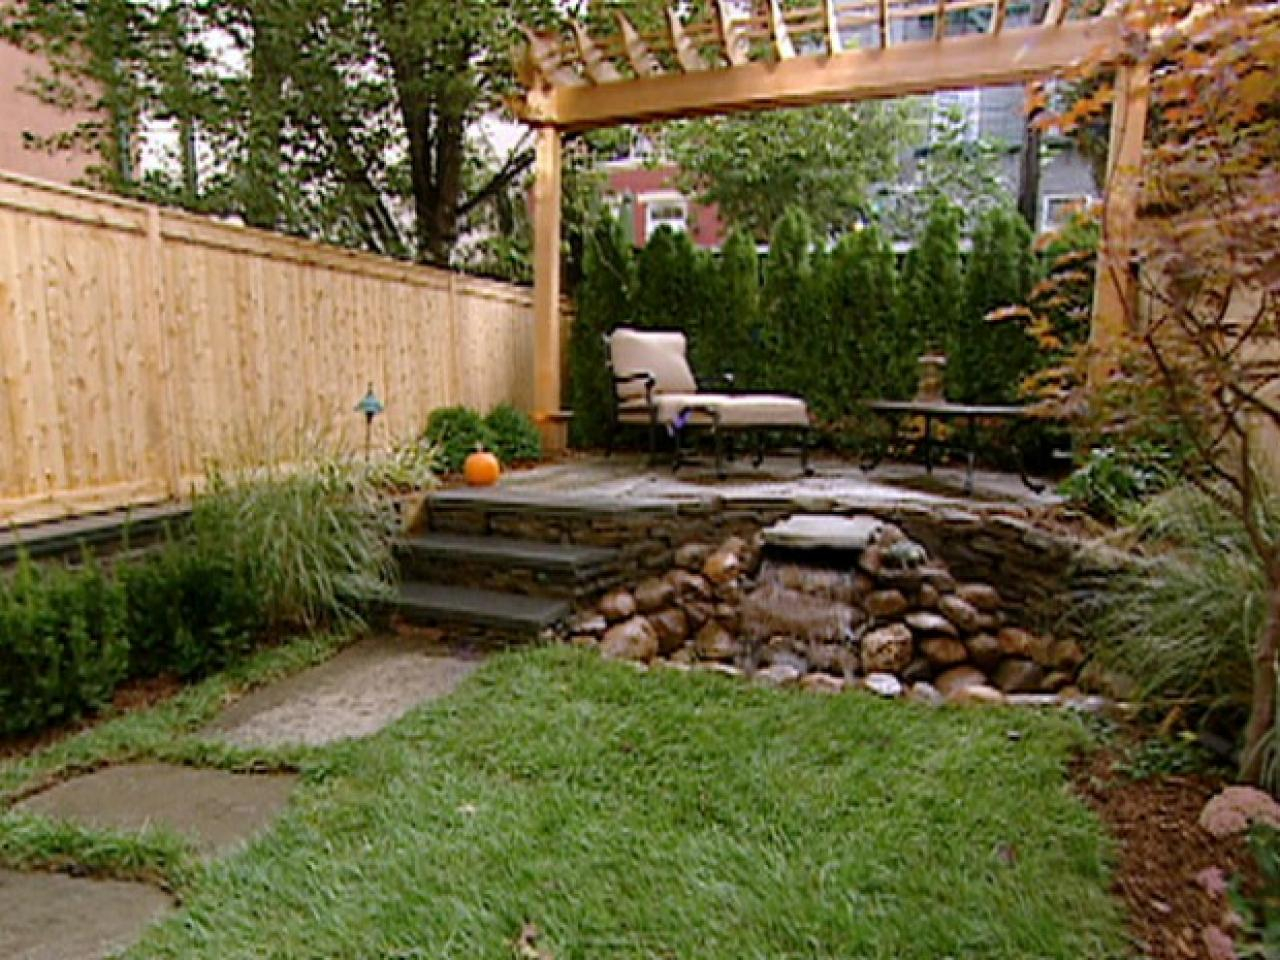 New Landscaping Ideas For Small Yards Outdoor Design York House inside 10 Clever Initiatives of How to Makeover Backyard Garden Designs And Ideas